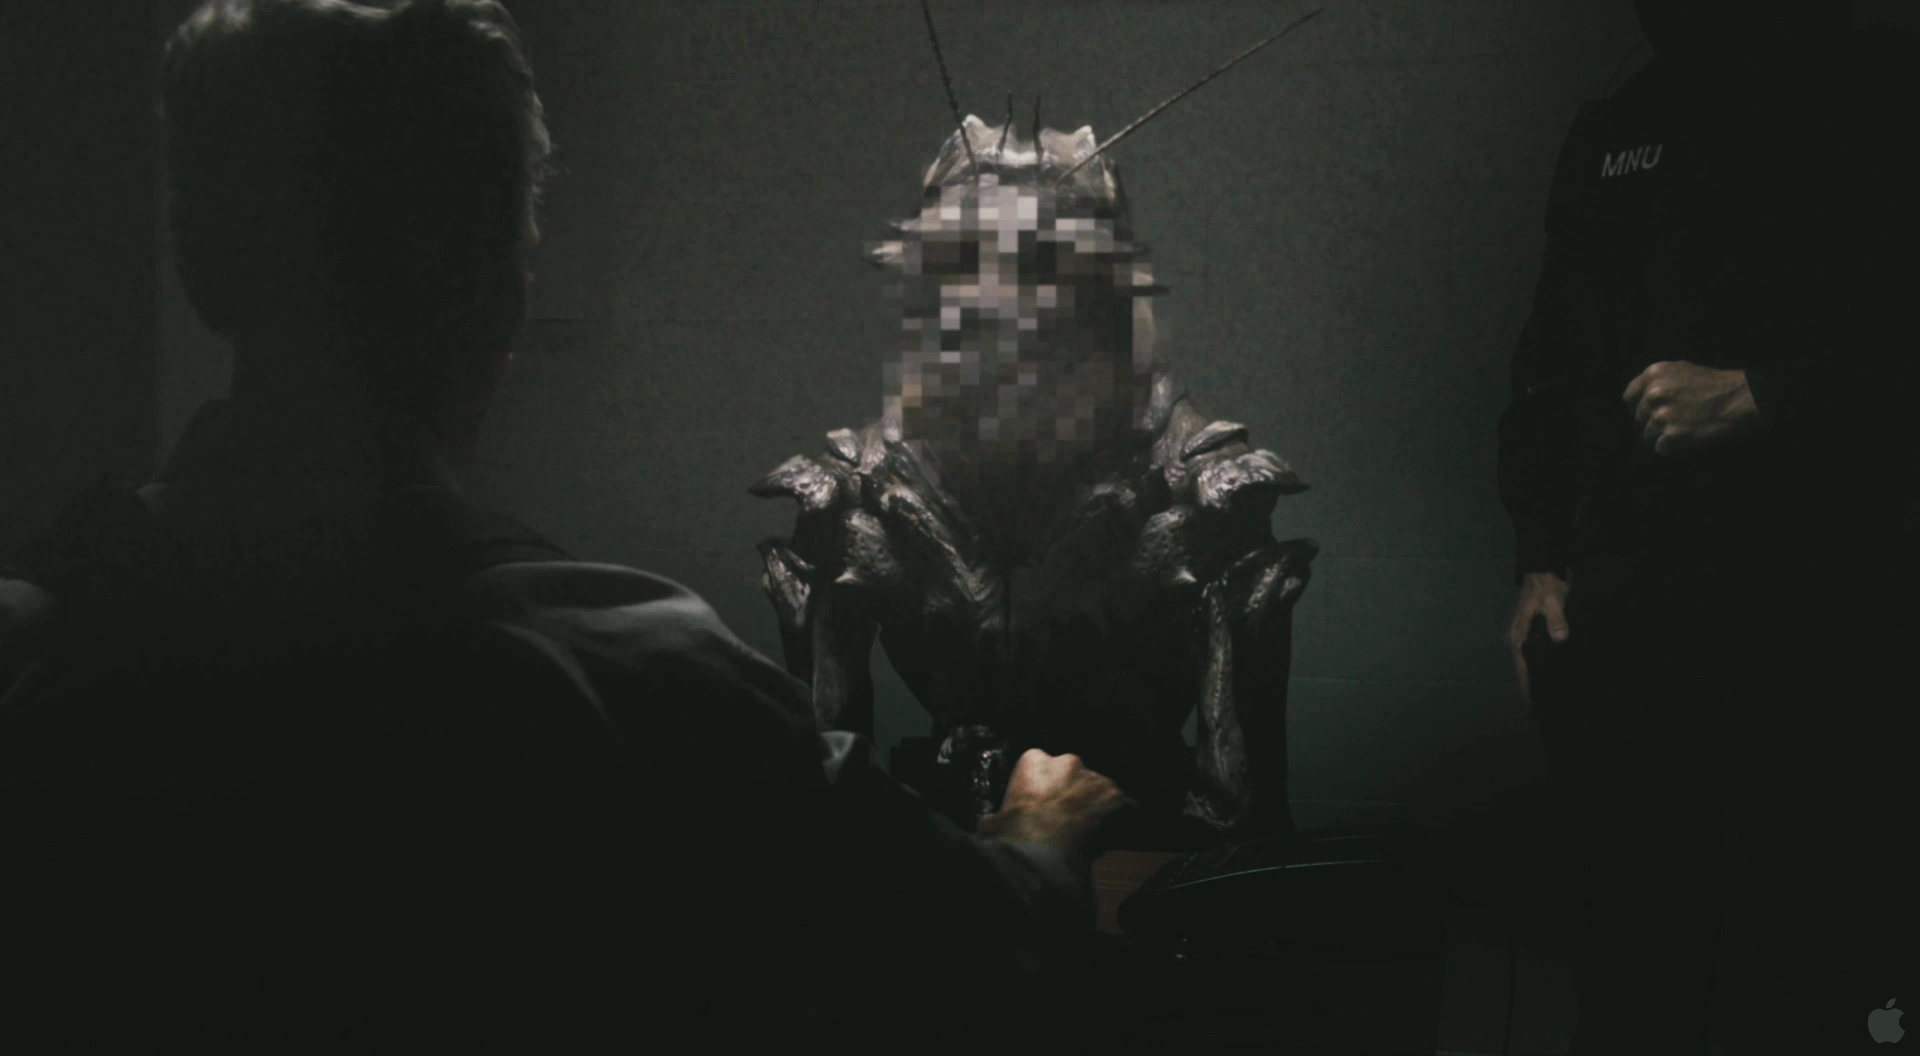 district 9 computer wallpapers - photo #30